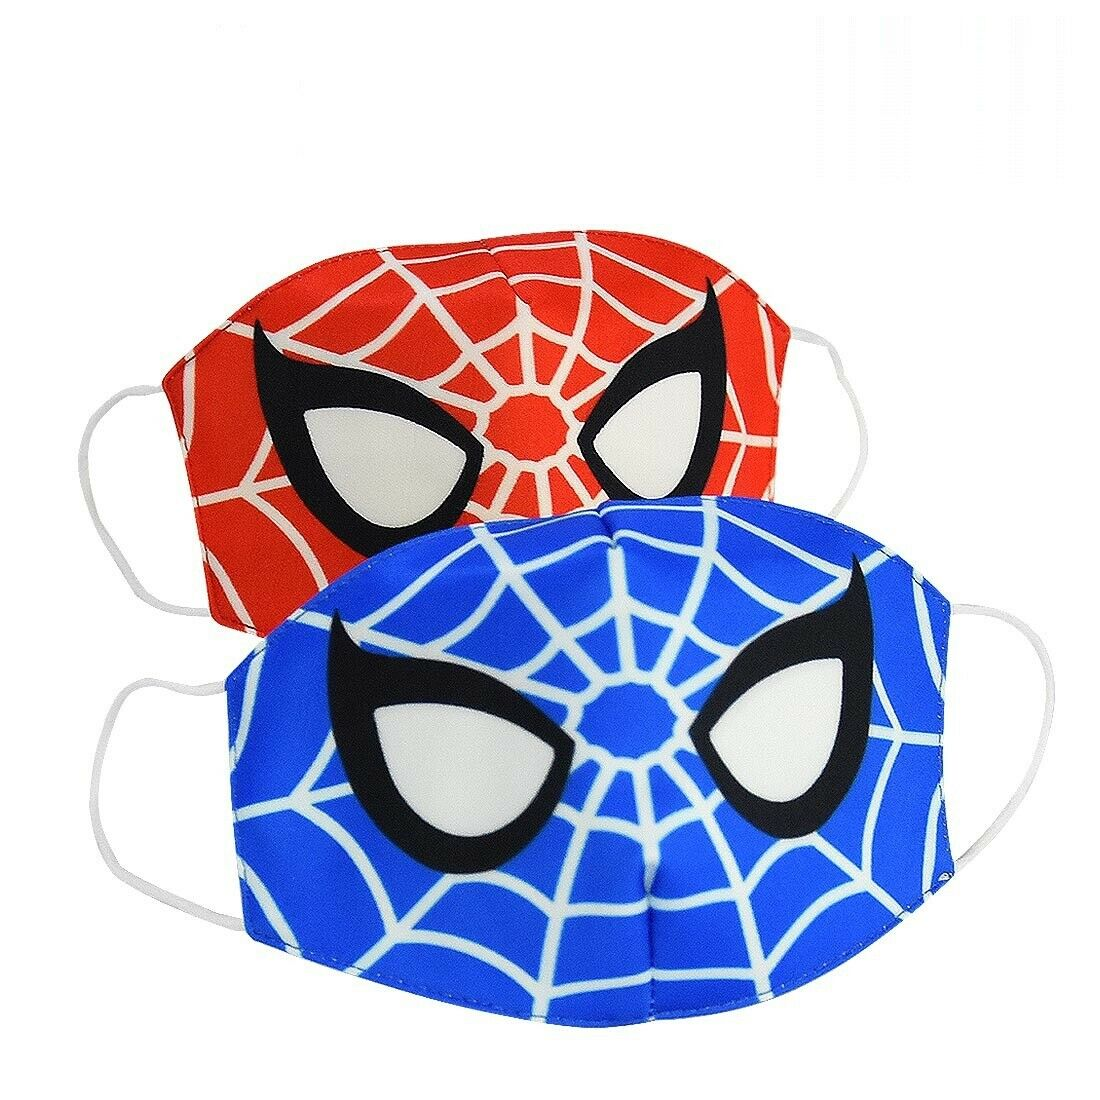 2pcs Comic Hero Spider Man Cotton Cloth Face Masks Mouth Cover for Kids or Adult Accessories